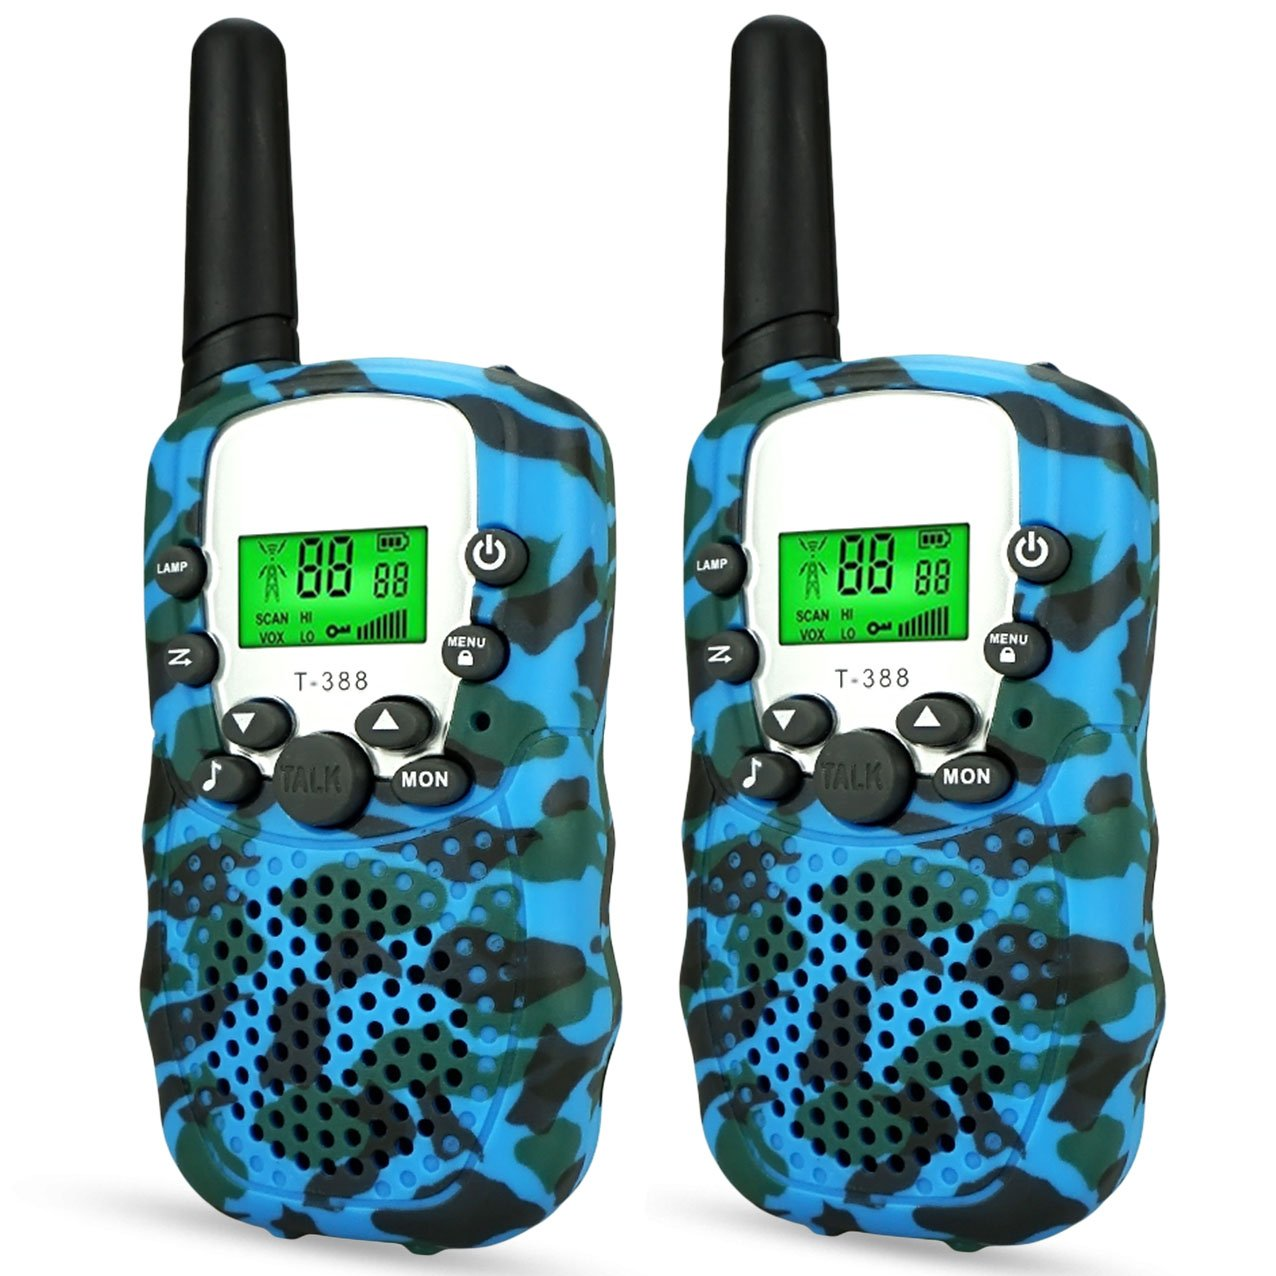 Toys for 3-12 Year Old Boys Girls,Kids Walkie Talkies Long Range Walky Talky for Kids Gifts for 3-12 Year Old Boys Gifts for 3-12 Year Old Girls birthday presents for Kids Blue OPUSMD002